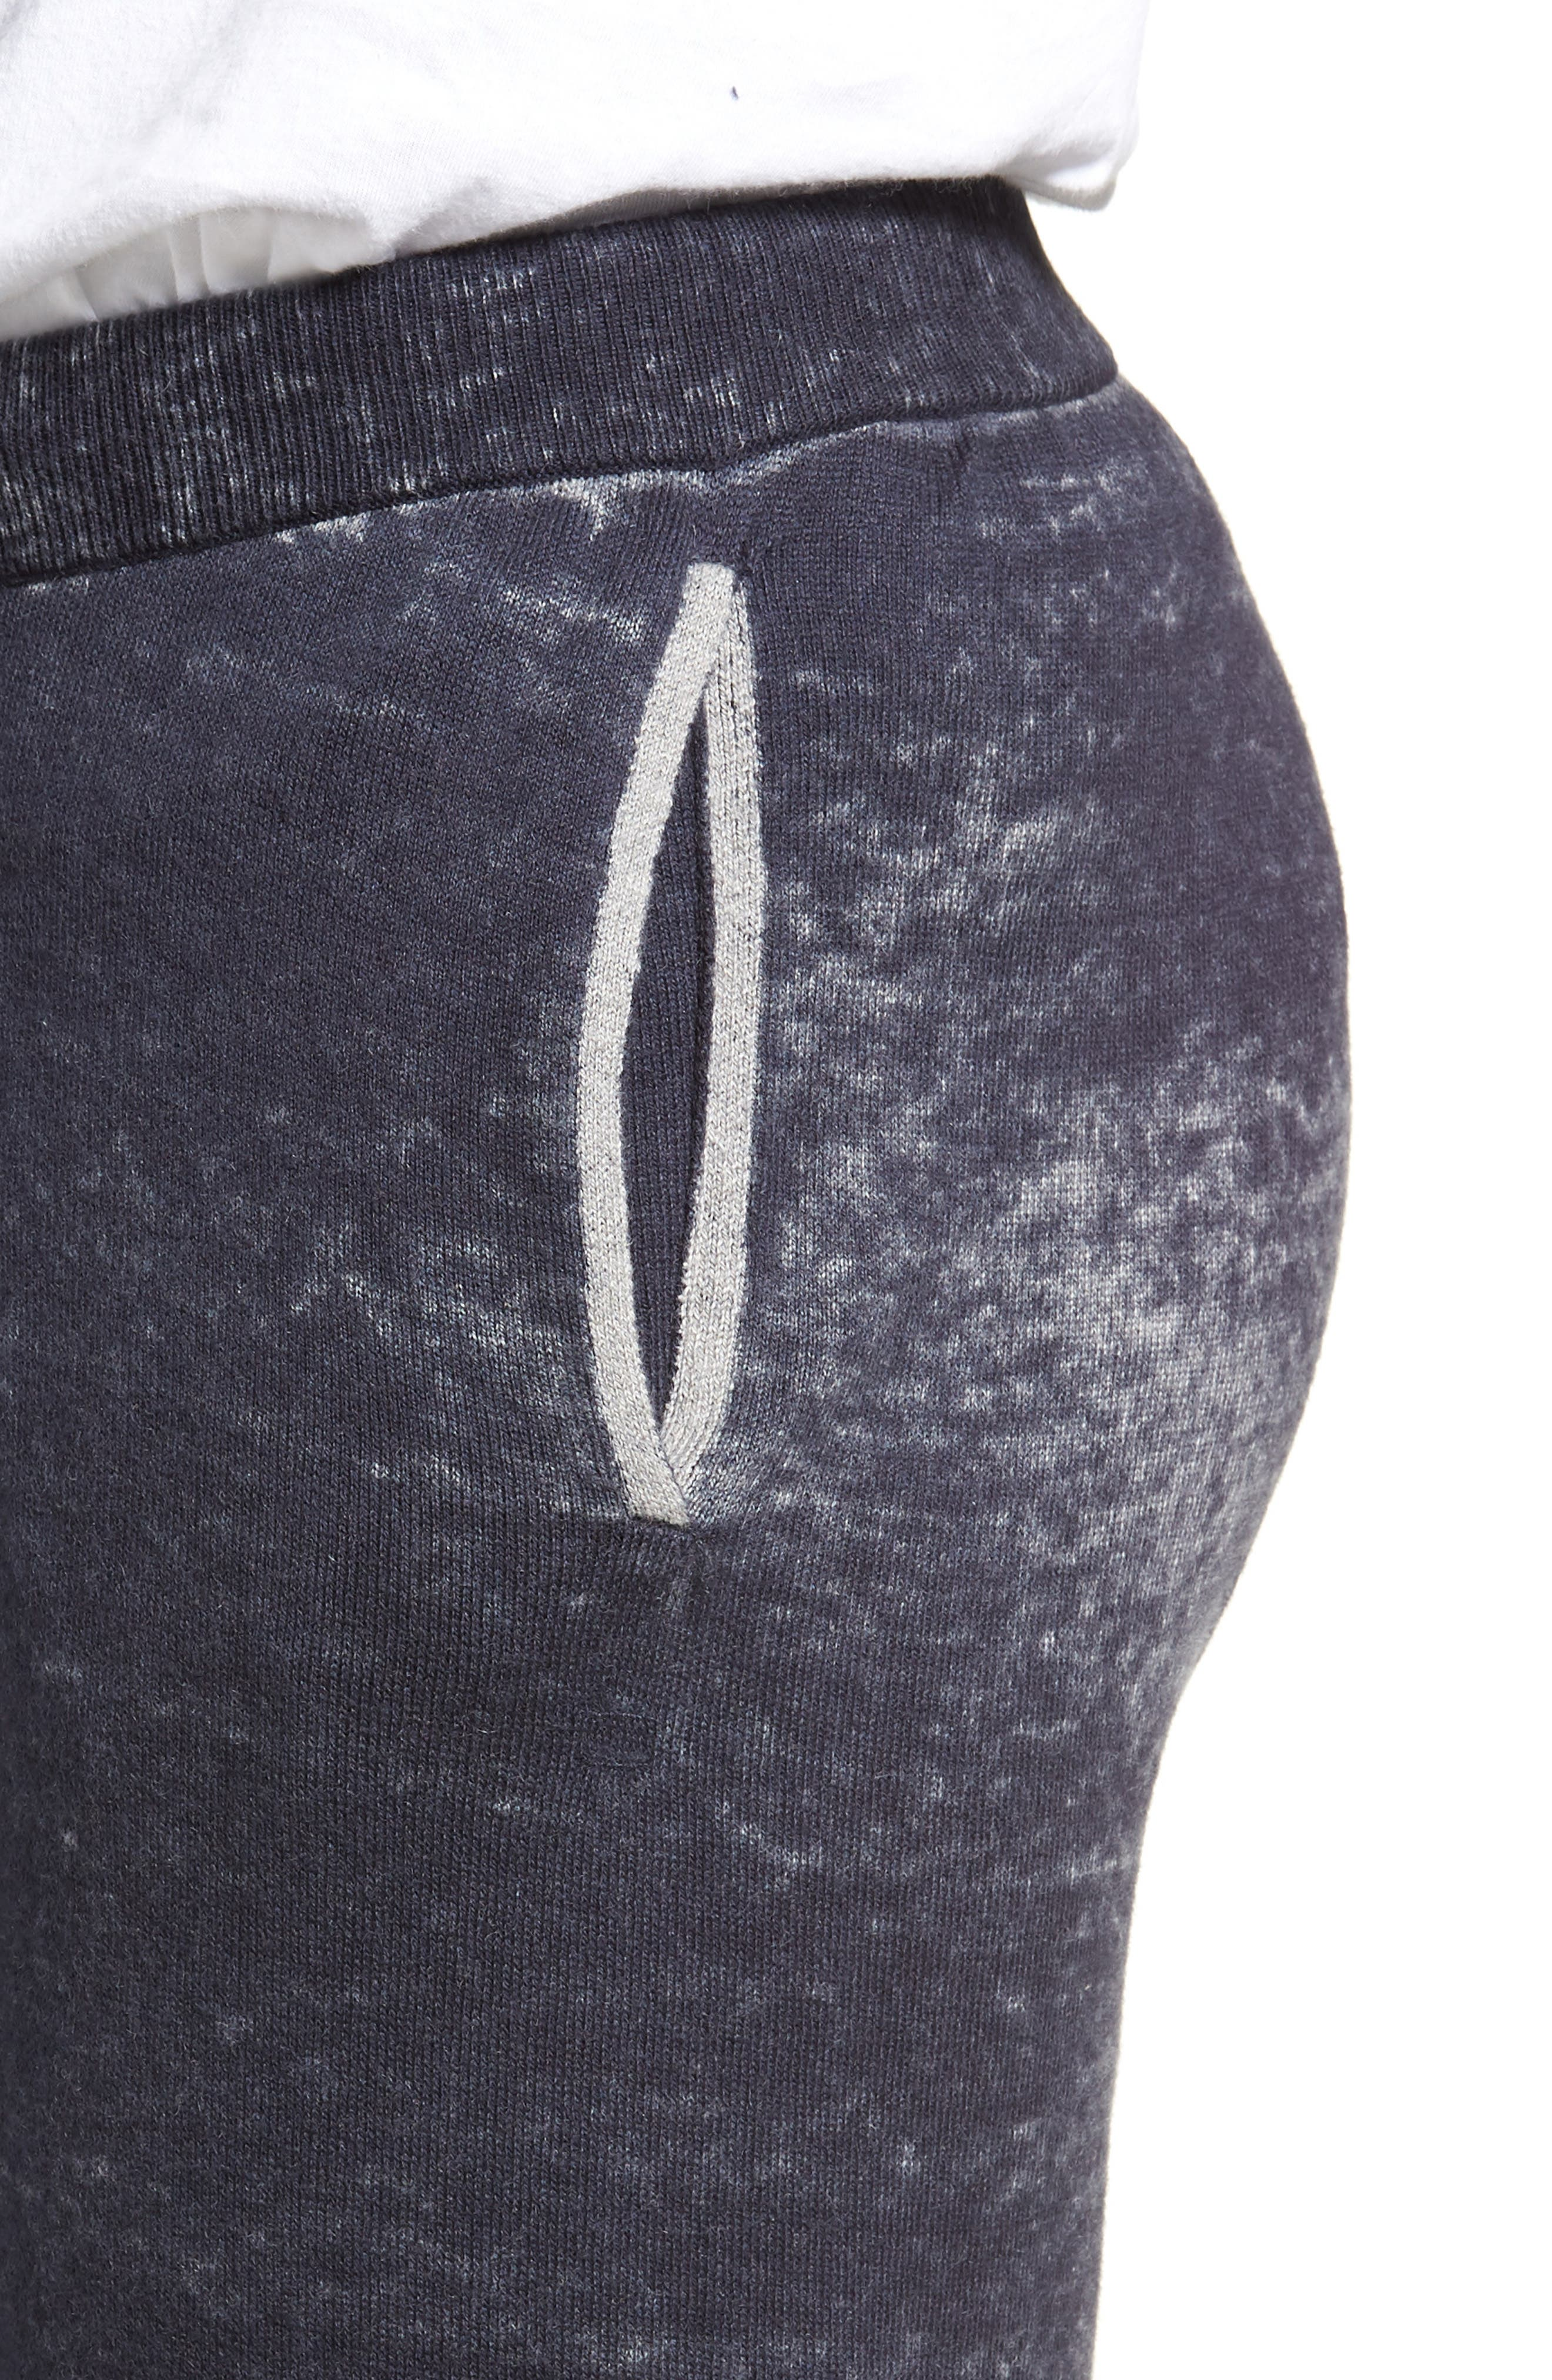 Kruse Rev Print Cash Sweatpants,                             Alternate thumbnail 4, color,                             MOONLESS NIGHT